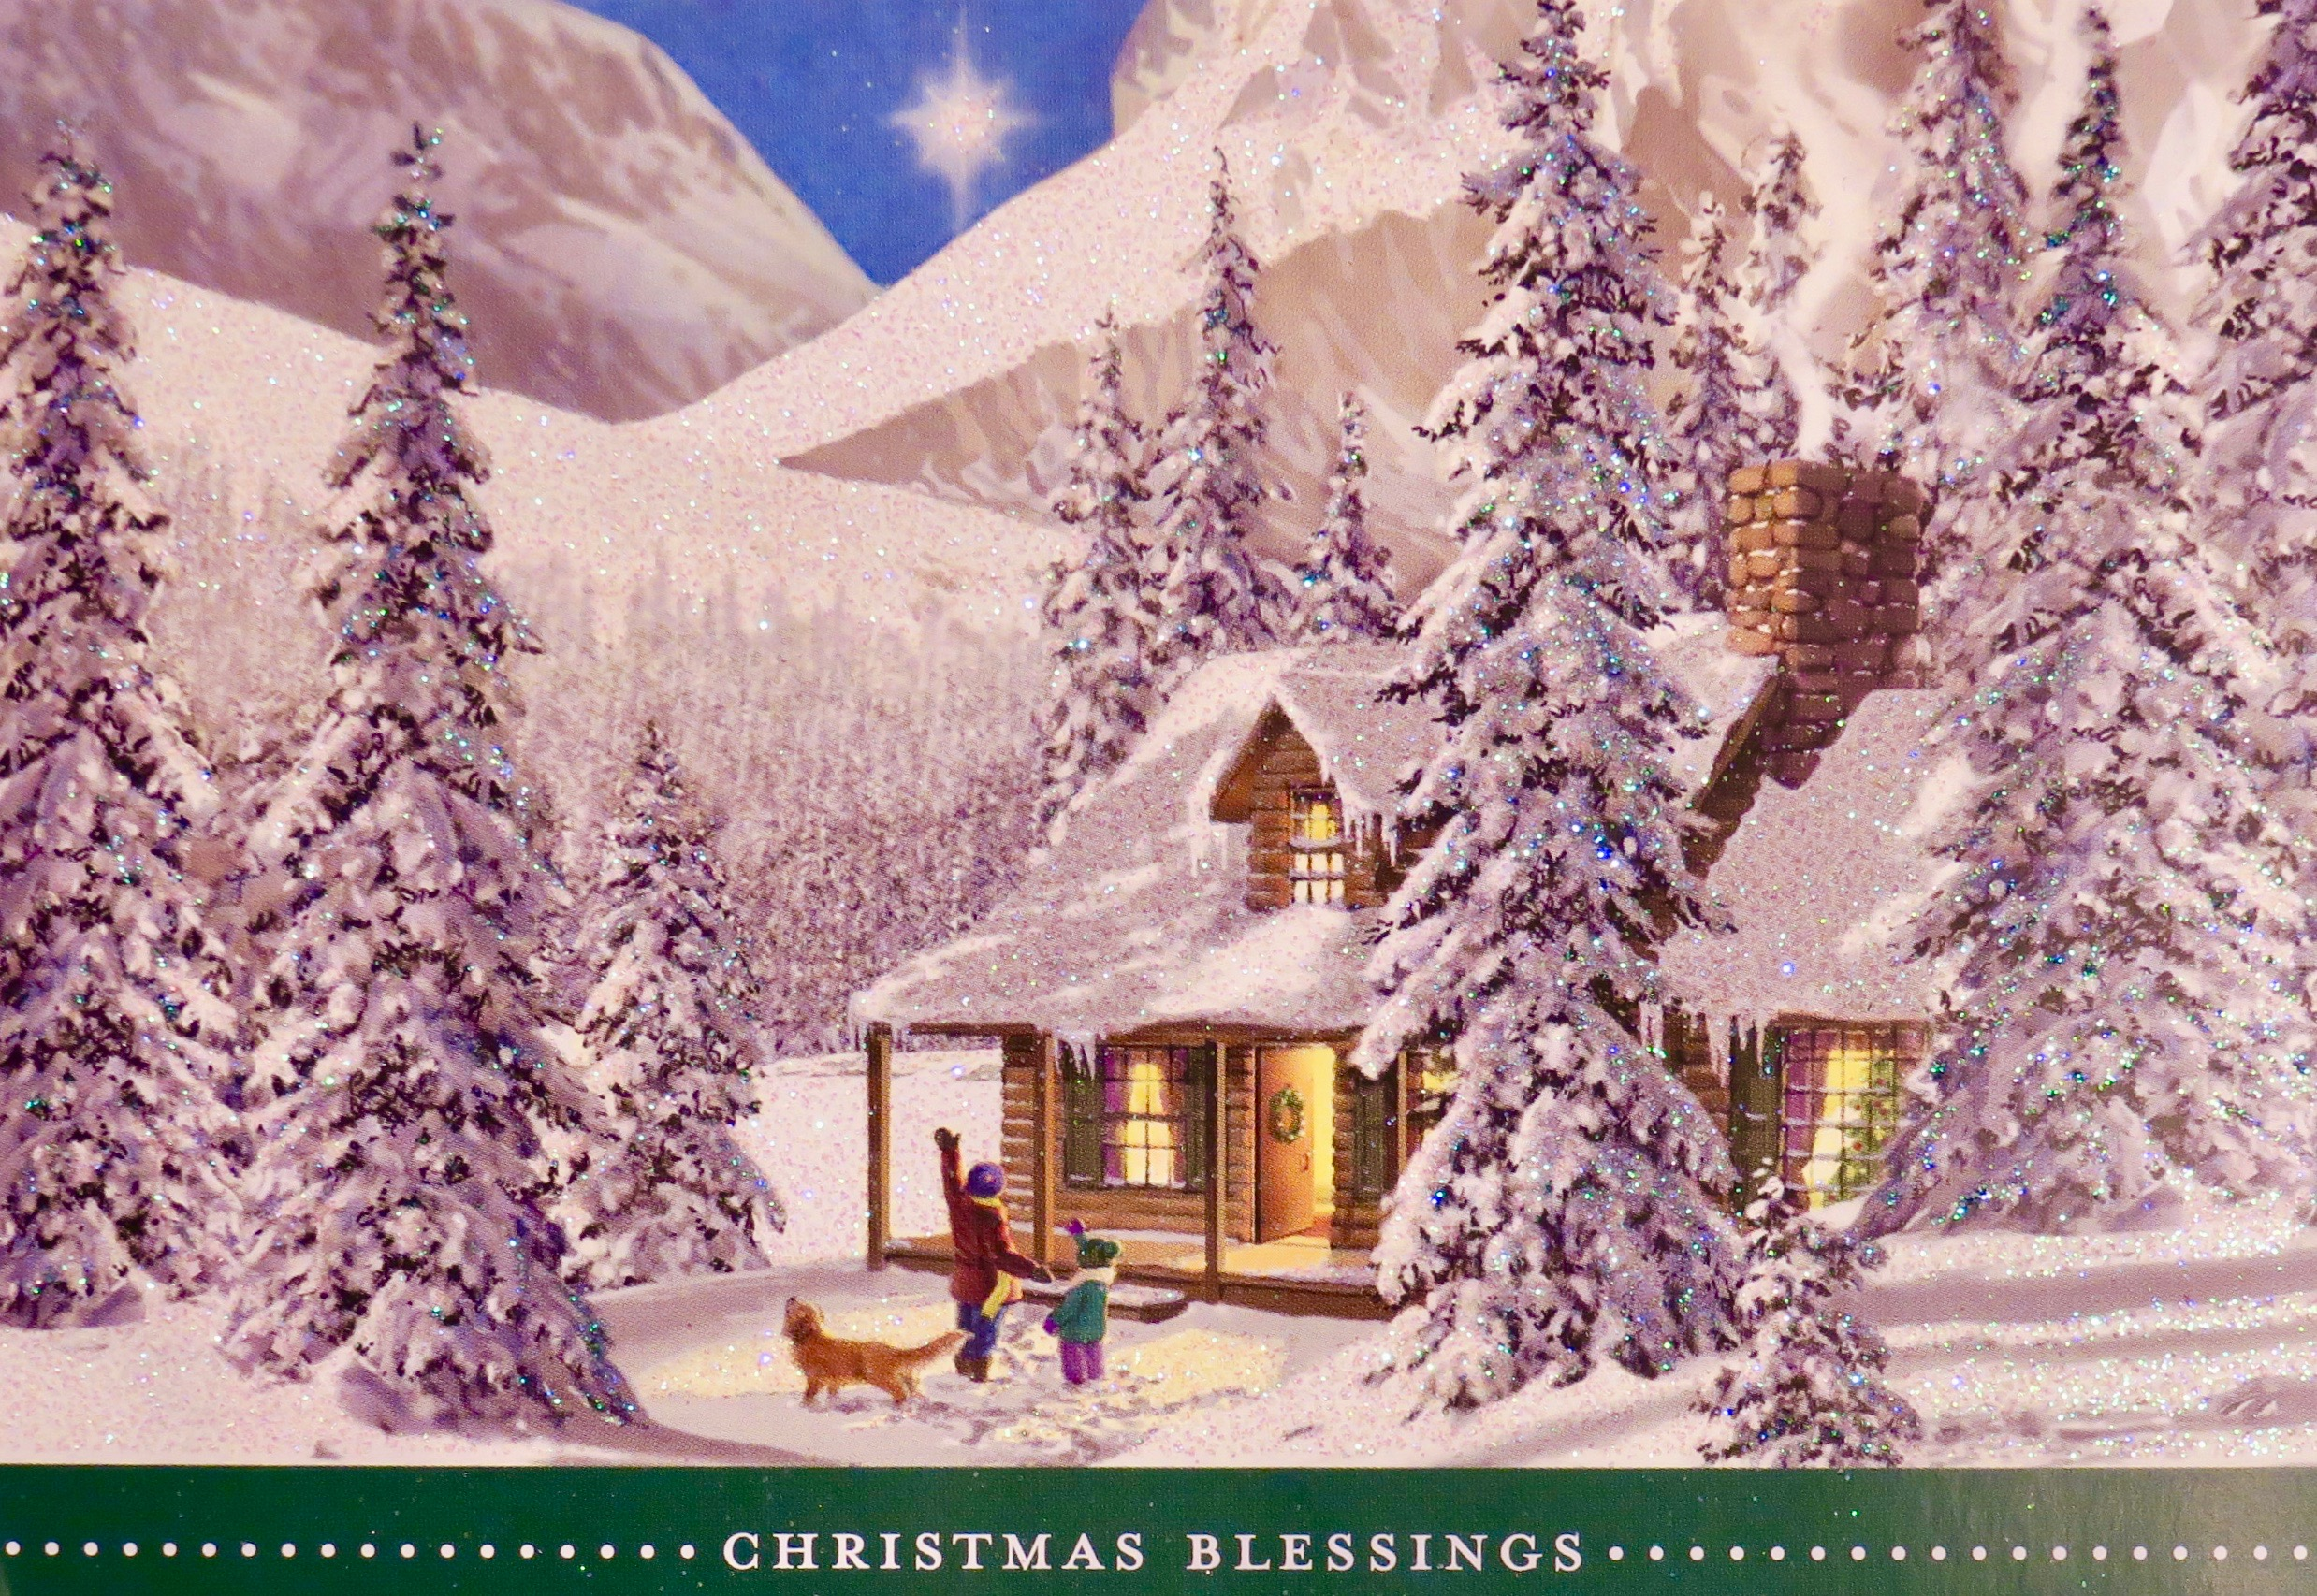 christmas-card-home-in-snow